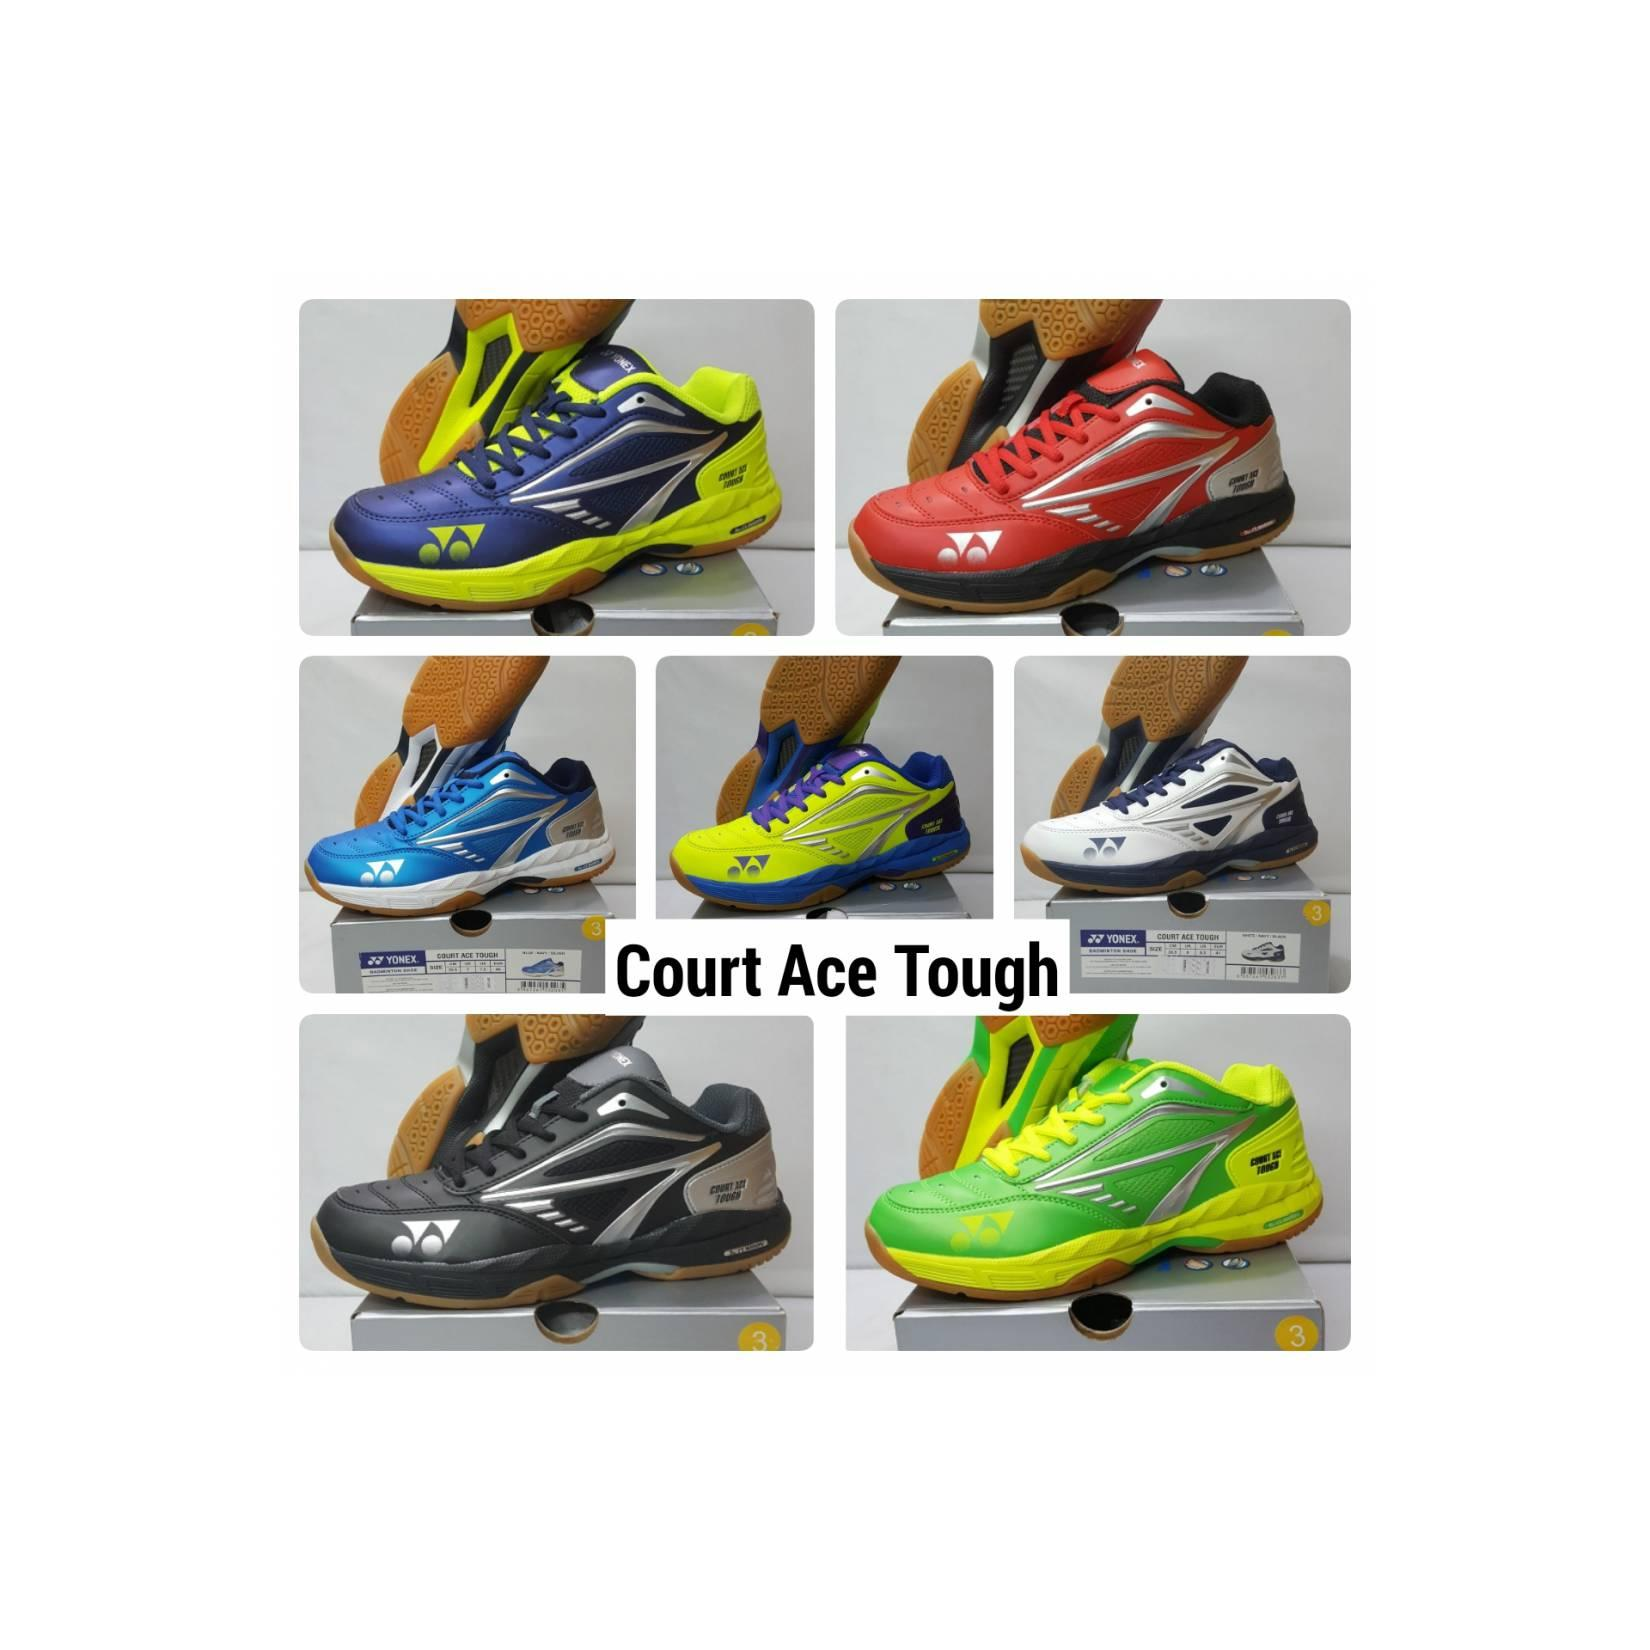 Sepatu Badminton Yonex Ace Court Tought - Original